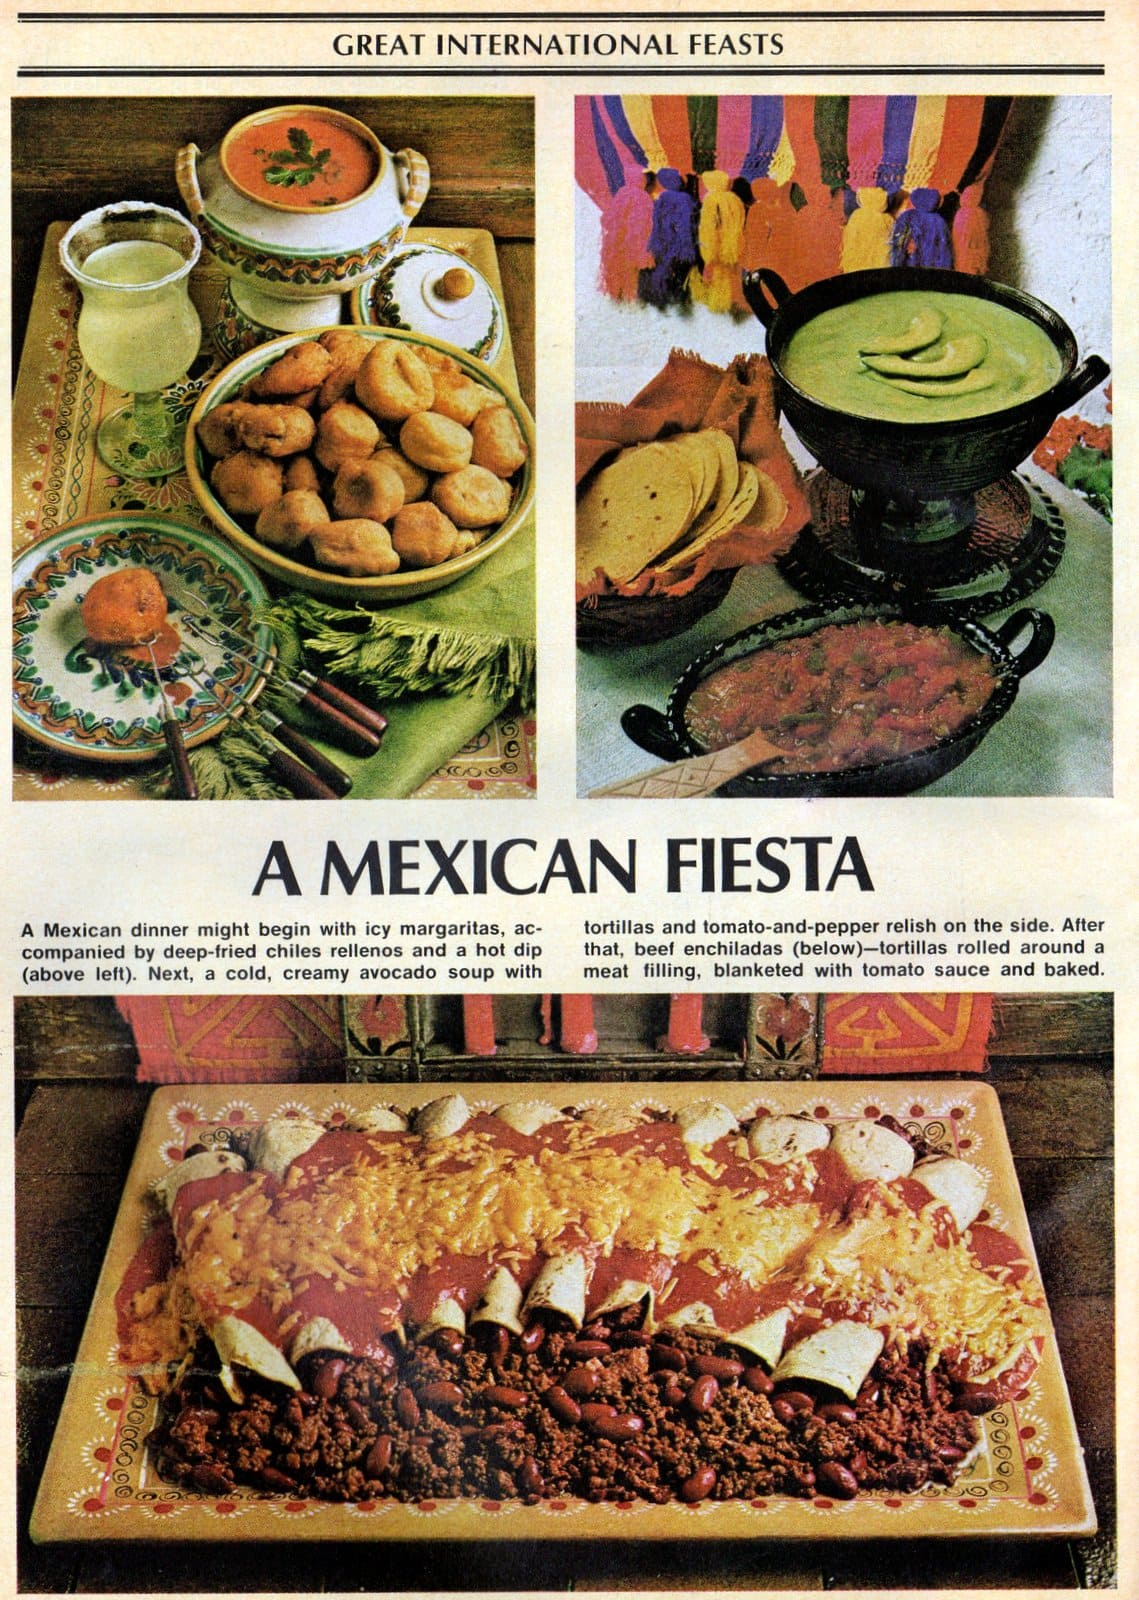 Vintage Mexican food, 1970s-style (2)